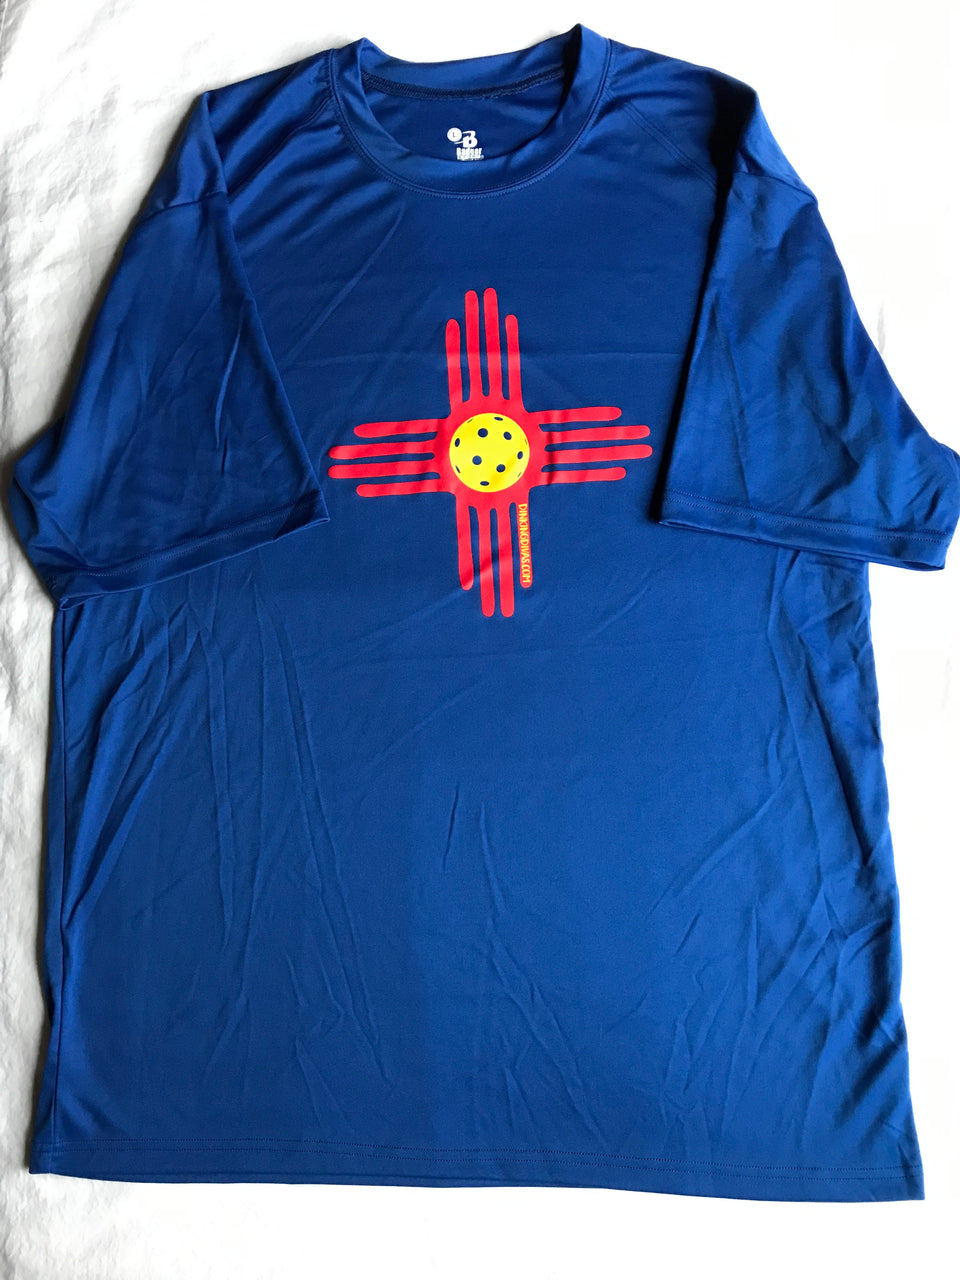 Men's New Mexico Zia Dri-Fit Shirt